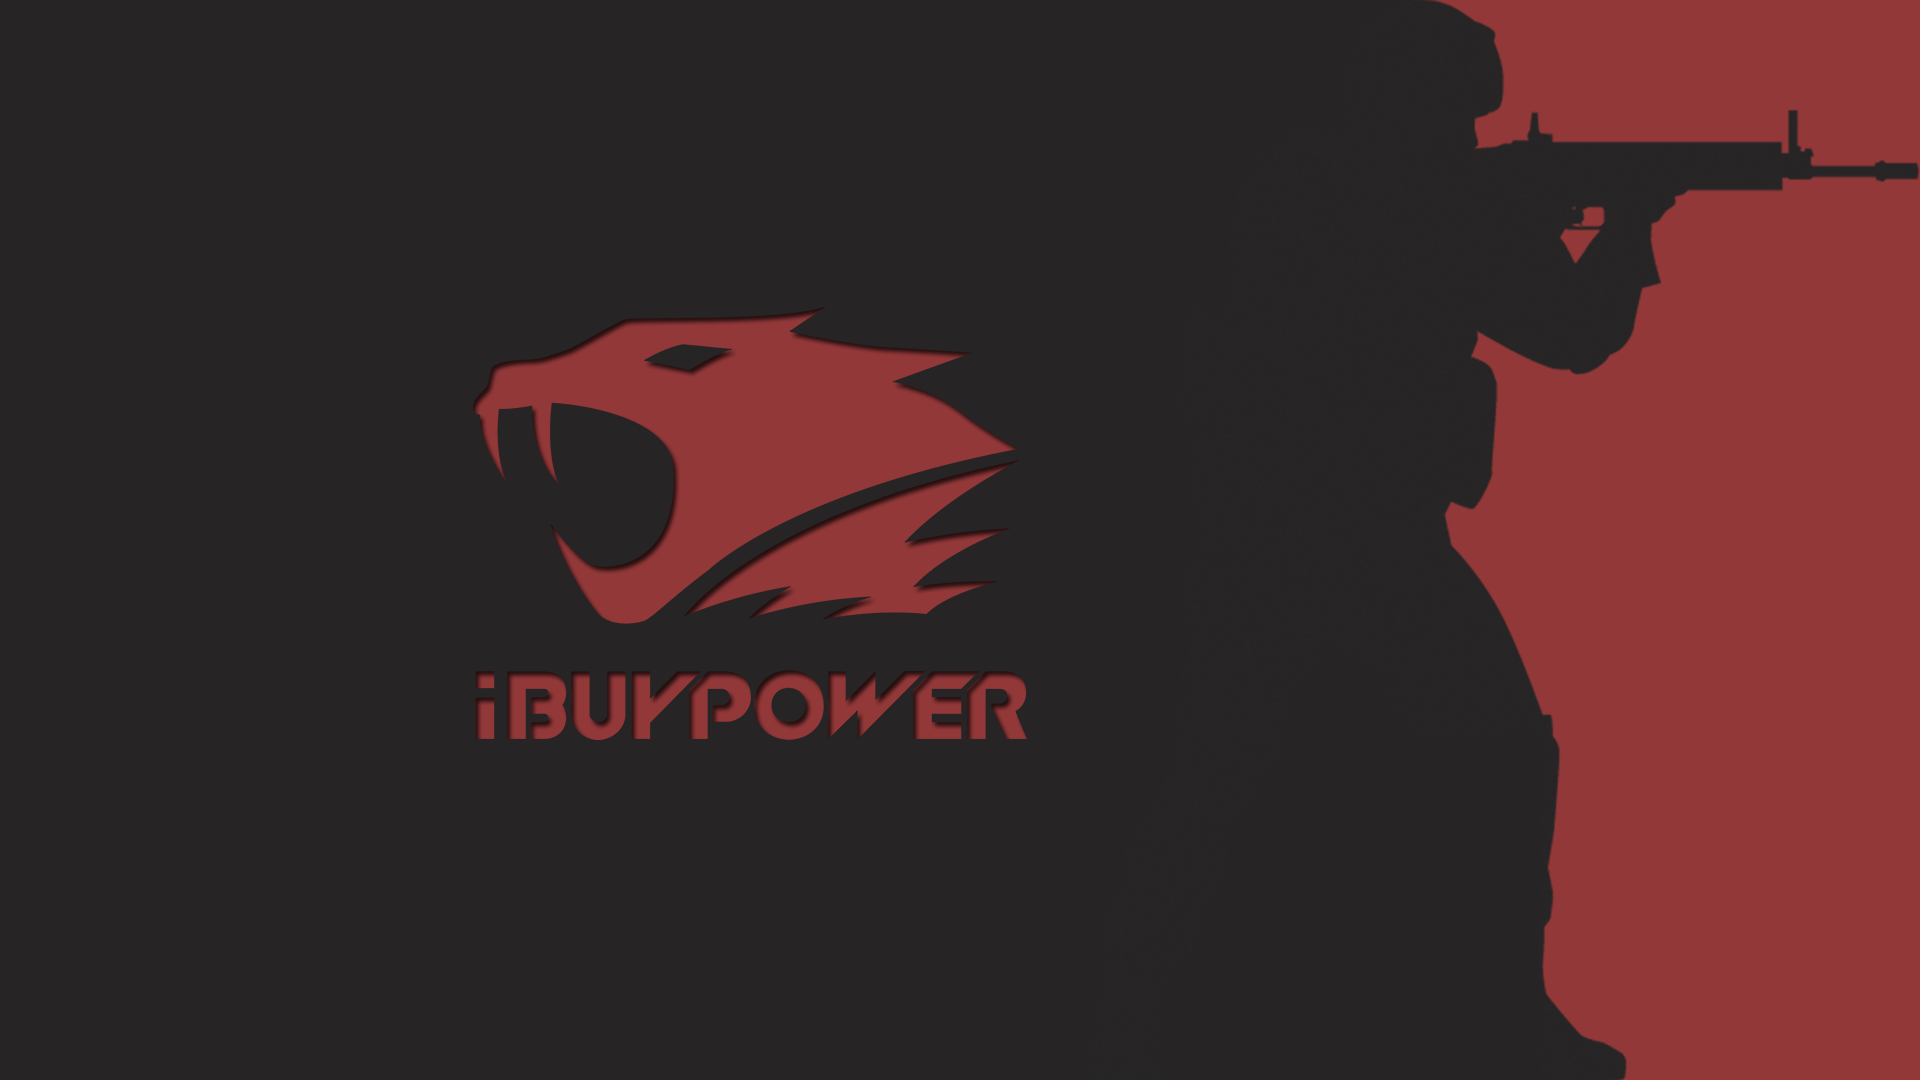 Wallpaper ibuypower cs go by suzigan96 on deviantart for Where can i purchase wallpaper